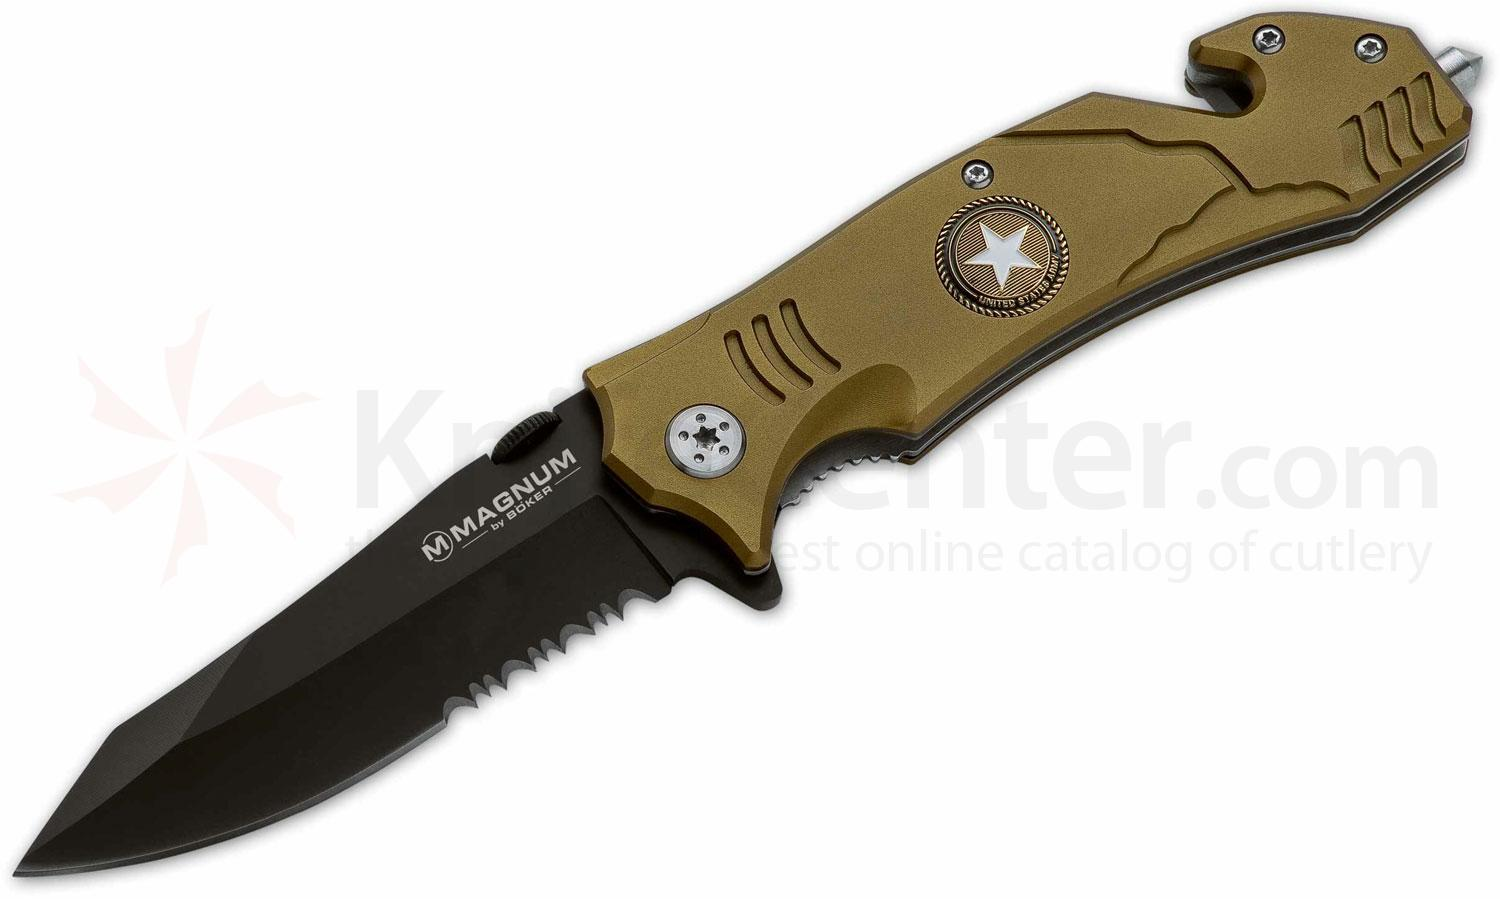 Boker Magnum Army Rescue Folding Knife 3-2/5 inch Black Combo Blade, Olive Aluminum Handles (01LL471)